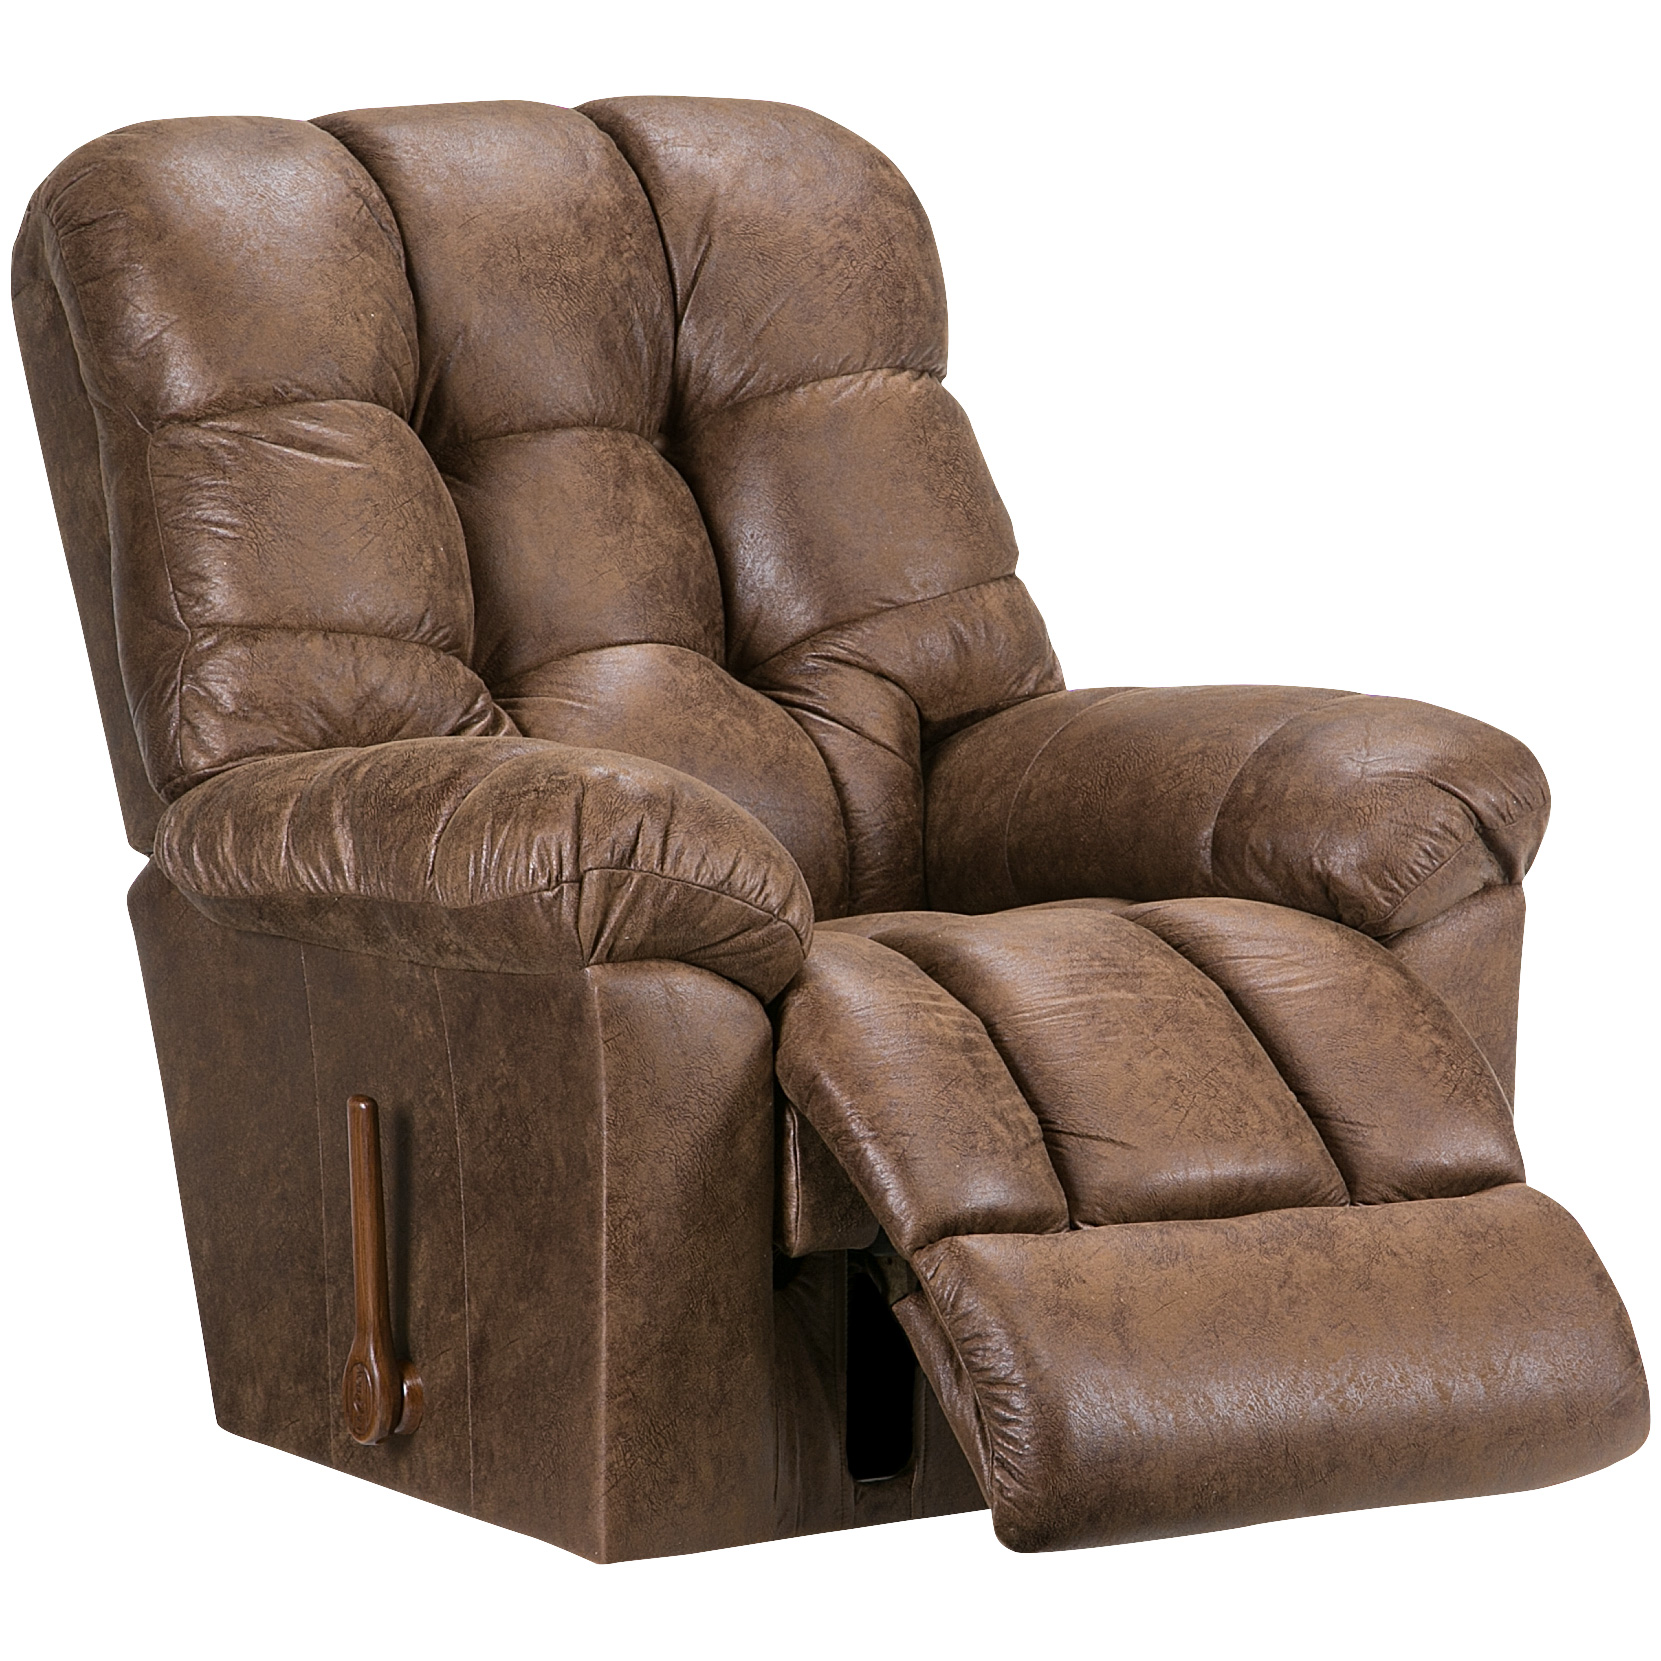 La-Z-Boy | Gibson Canyon Rocker Recliner Chair